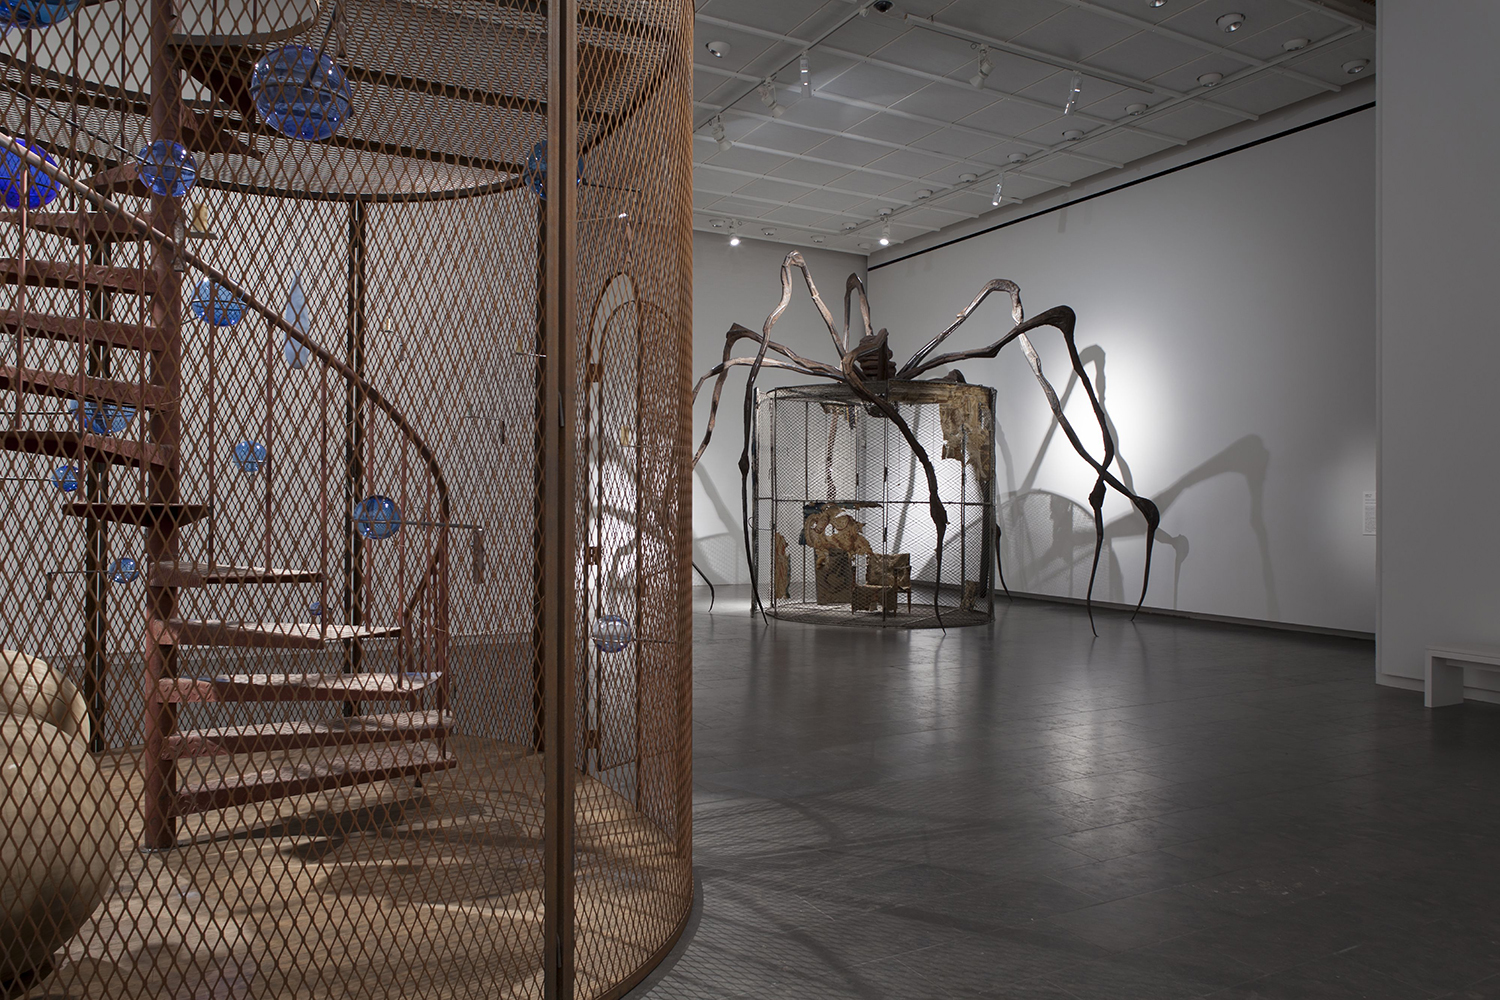 Louisiana Museum of Modern Art, Humlebæk, Danmark. Installation shot. Louise Bourgeois. Structures of Existence: The Cells. 13.10. 2016 - 16.2. 2017. Fotograf: Poul Buchard / Brøndum & Co. © The Easton Foundation.